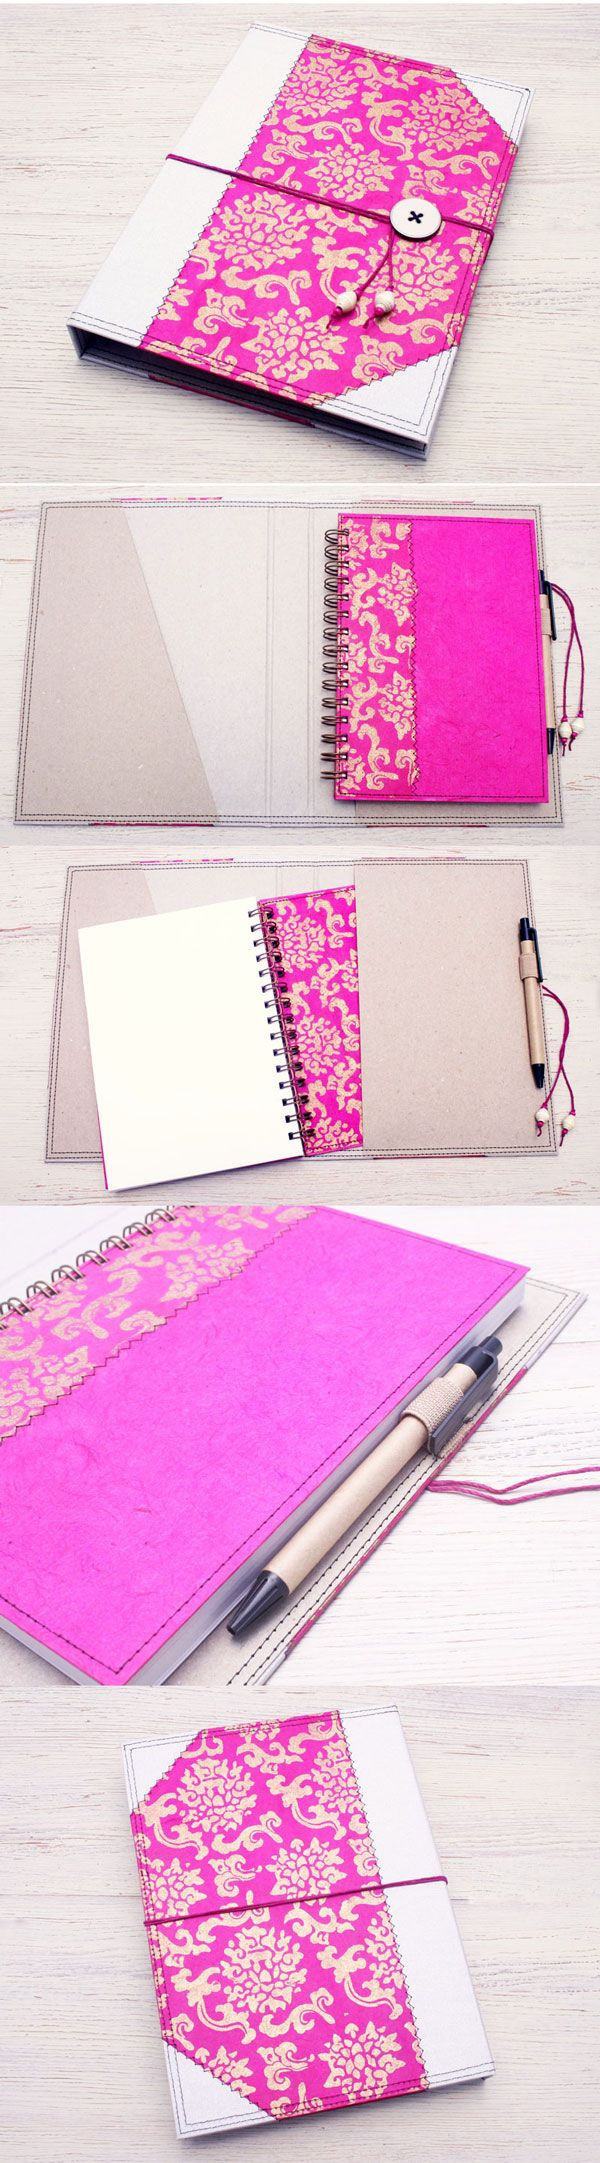 Pink and Silver Notebook Cover Folder by Little Deer Studio. Handmade from recycled and handmade papers. Fits any A5 size notebook